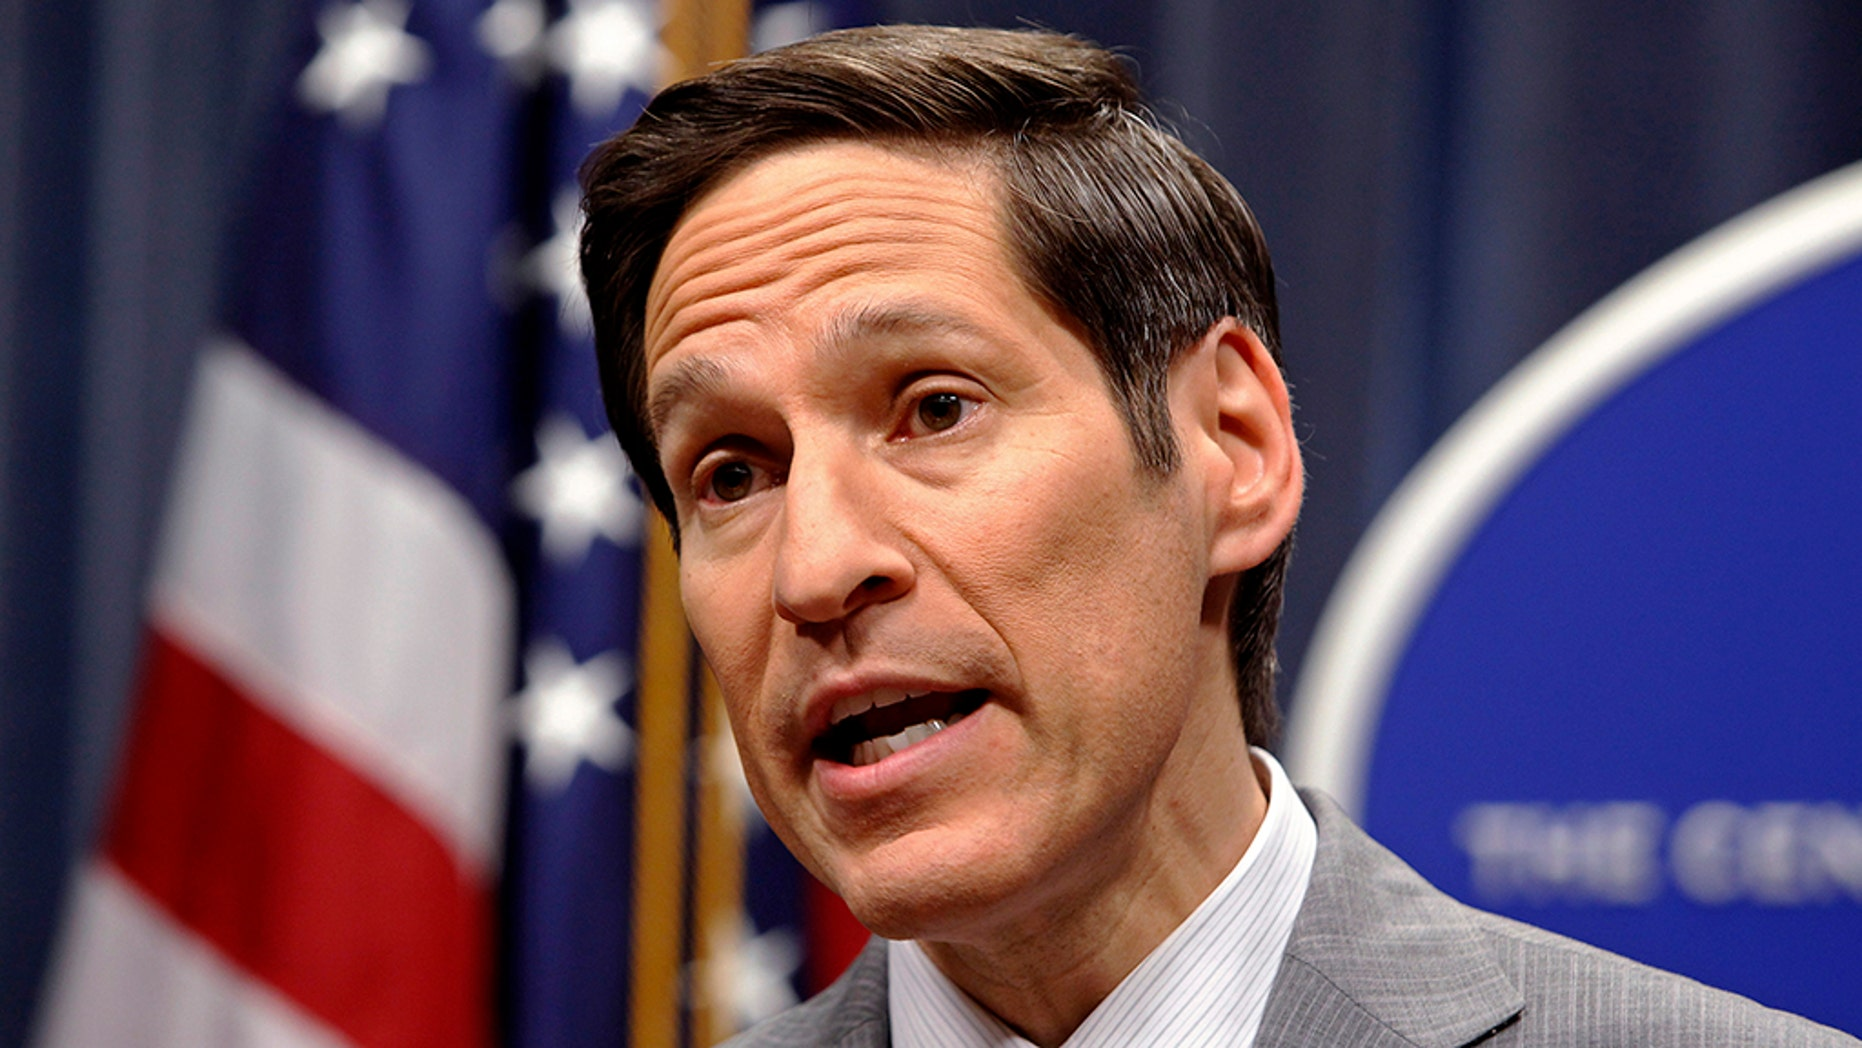 Dr Tom Frieden, former director of the CDC, has been arrested on suspicion of sexually harassing a woman at his Brooklyn apartment.